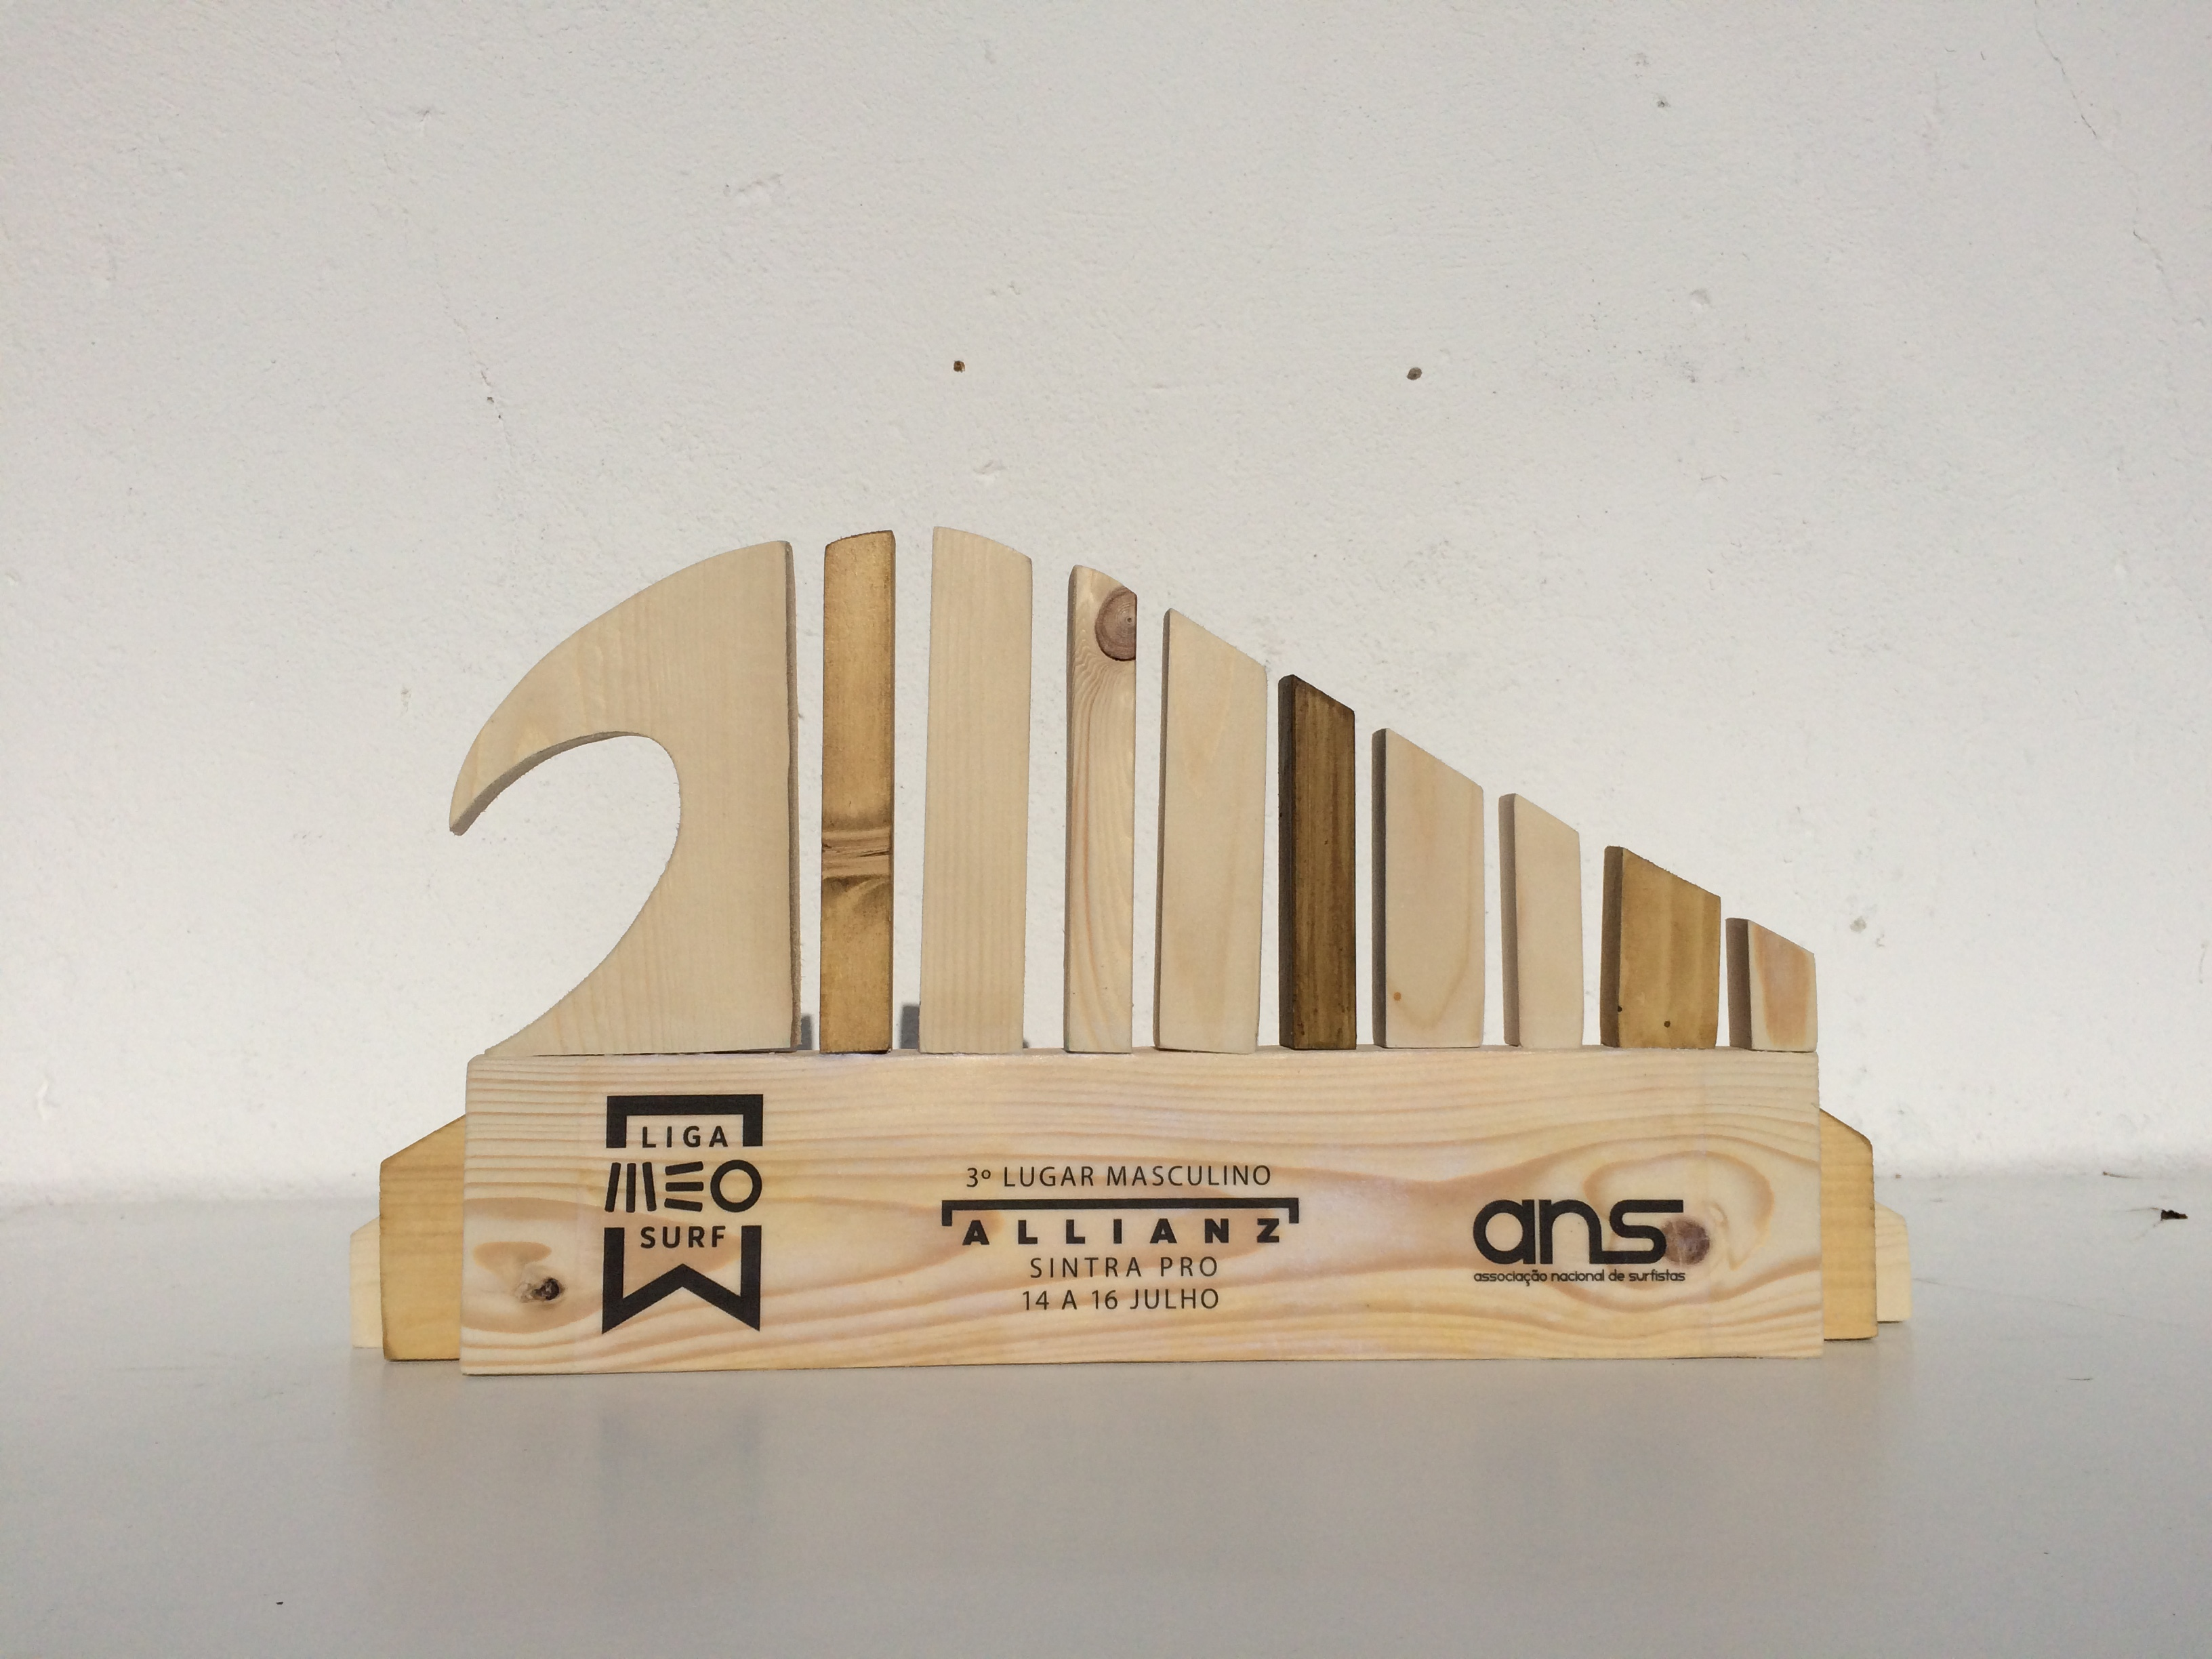 Wood trophy for one of the events